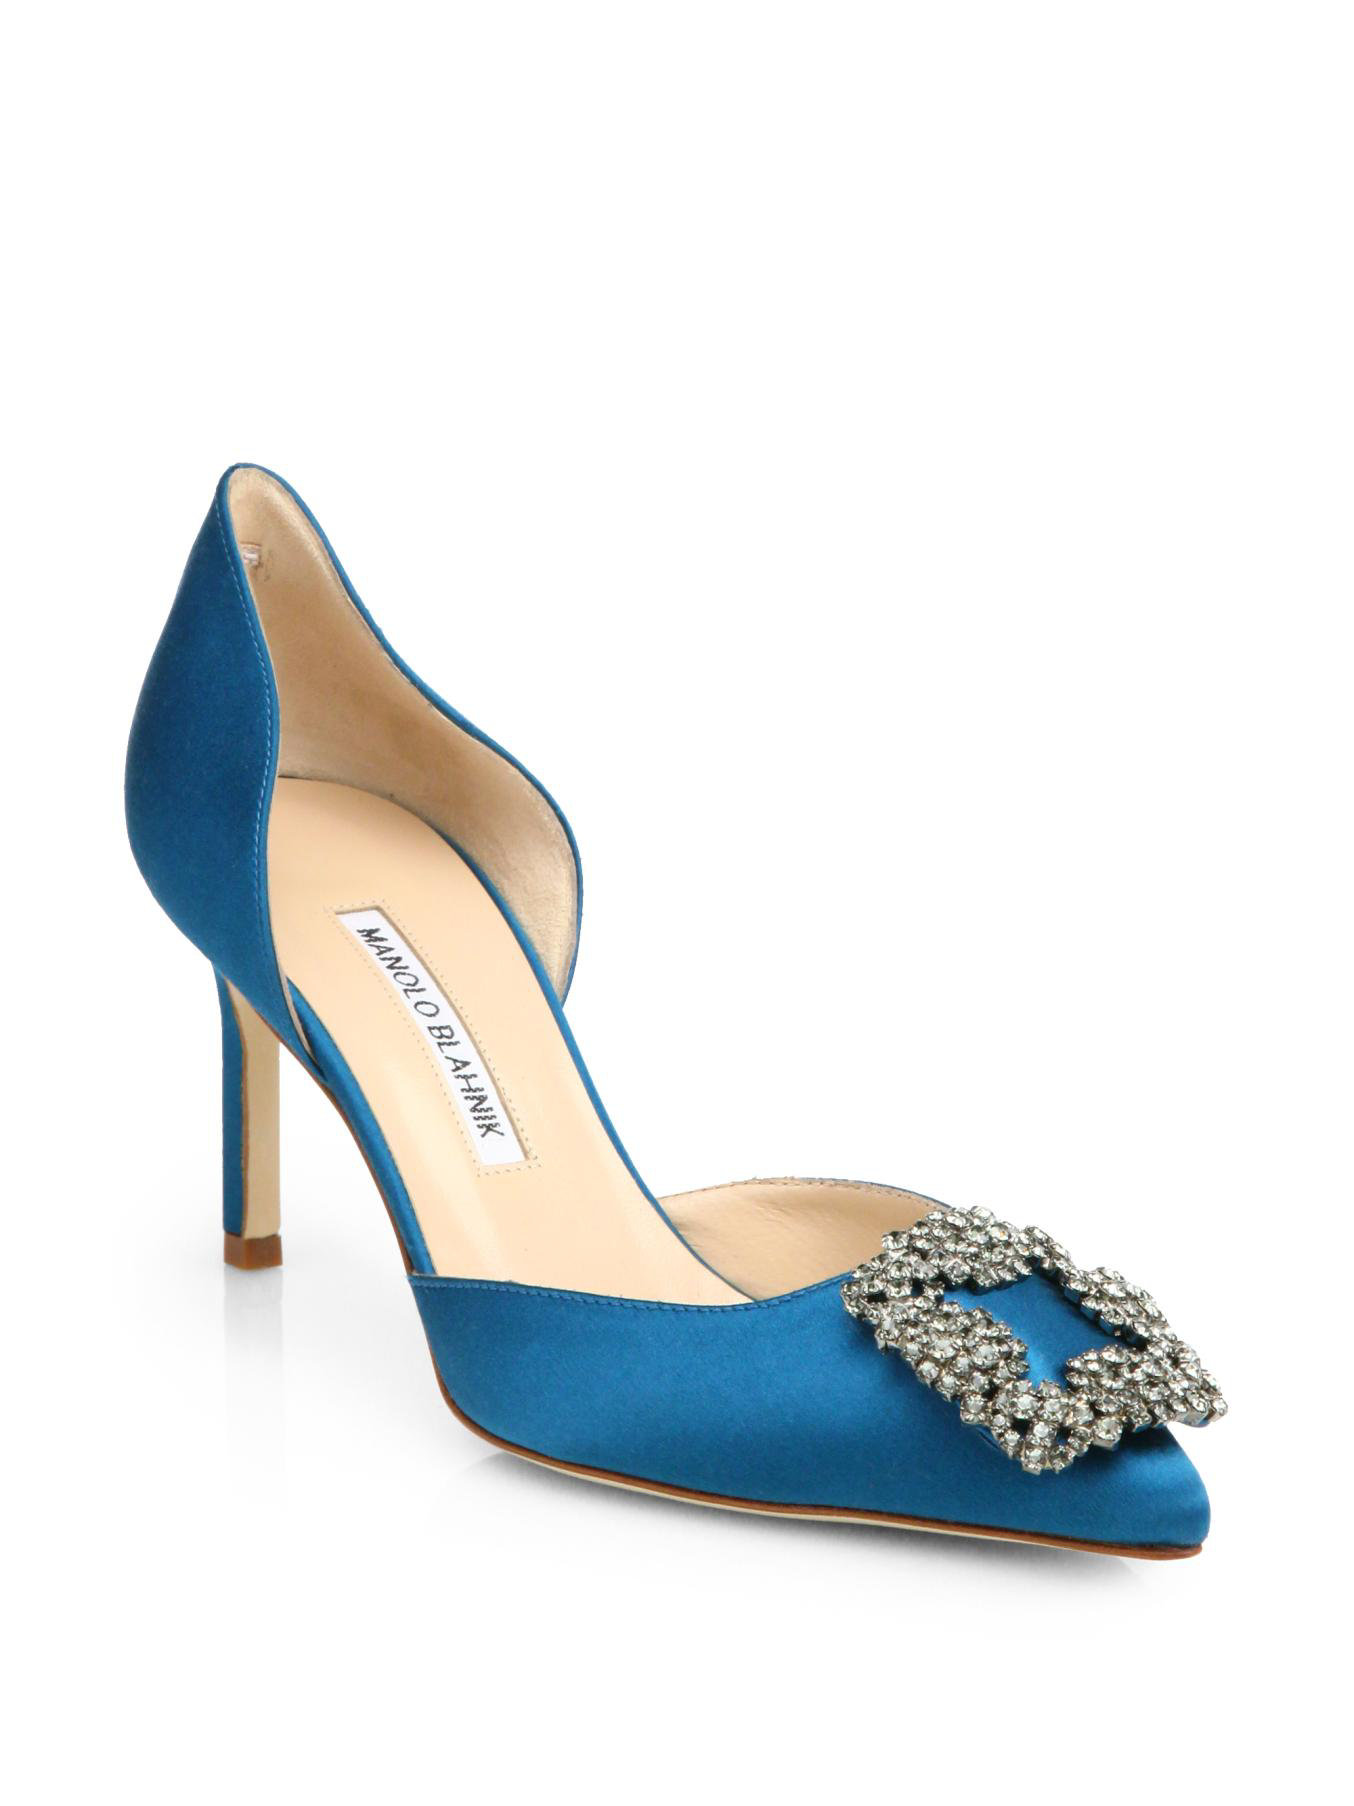 Manolo blahnik hangisido satin d 39 orsay pumps in blue teal for Who is manolo blahnik